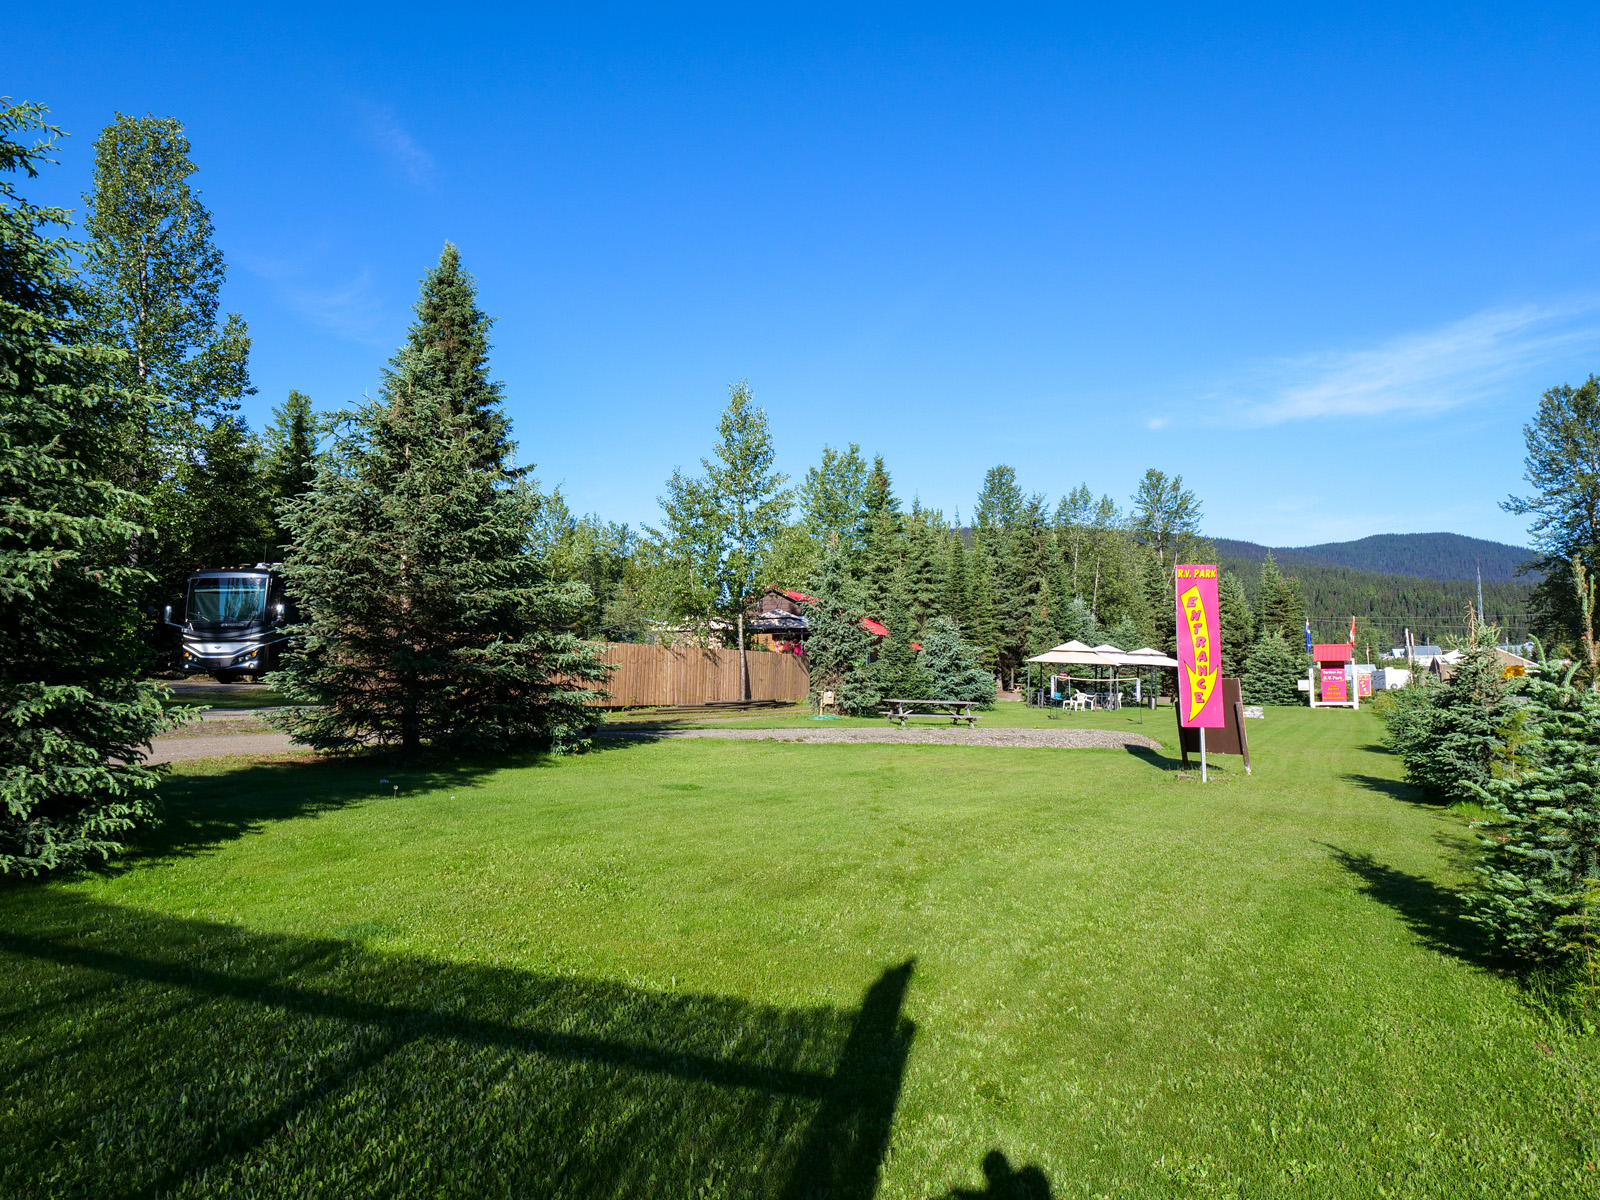 Cariboo joy rv park 05